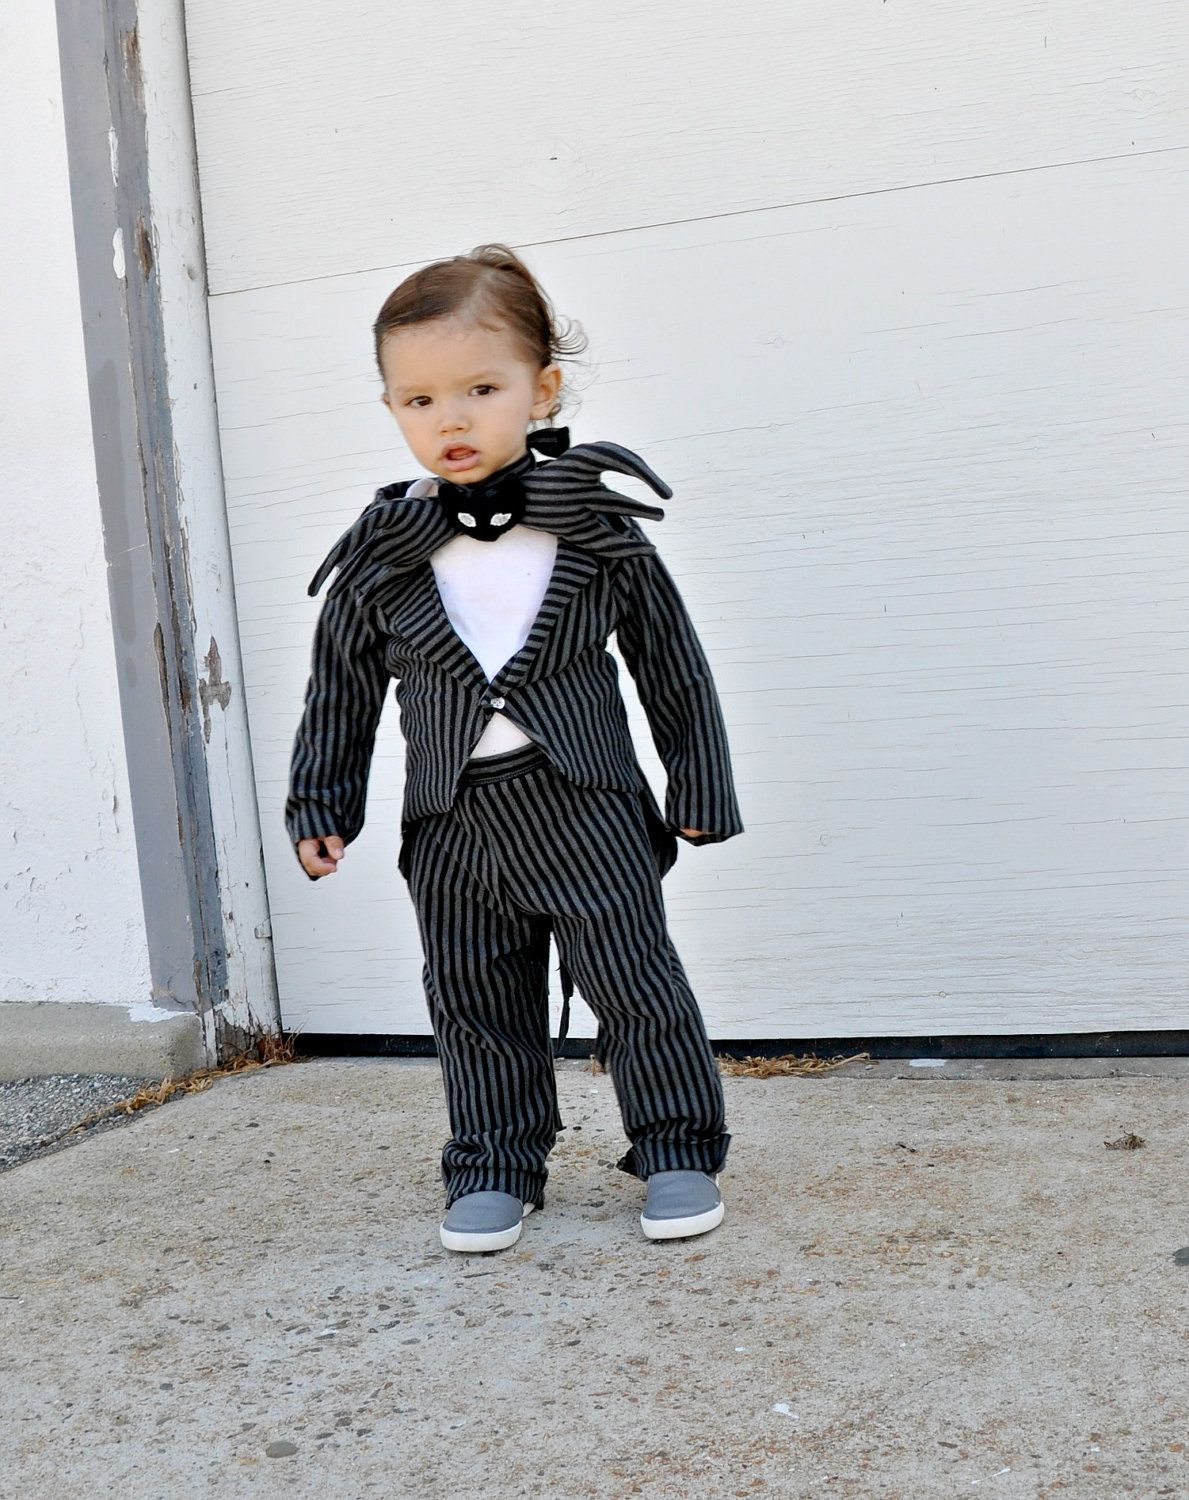 Boys babies costume Jack skellington nightmare before Christmas ...